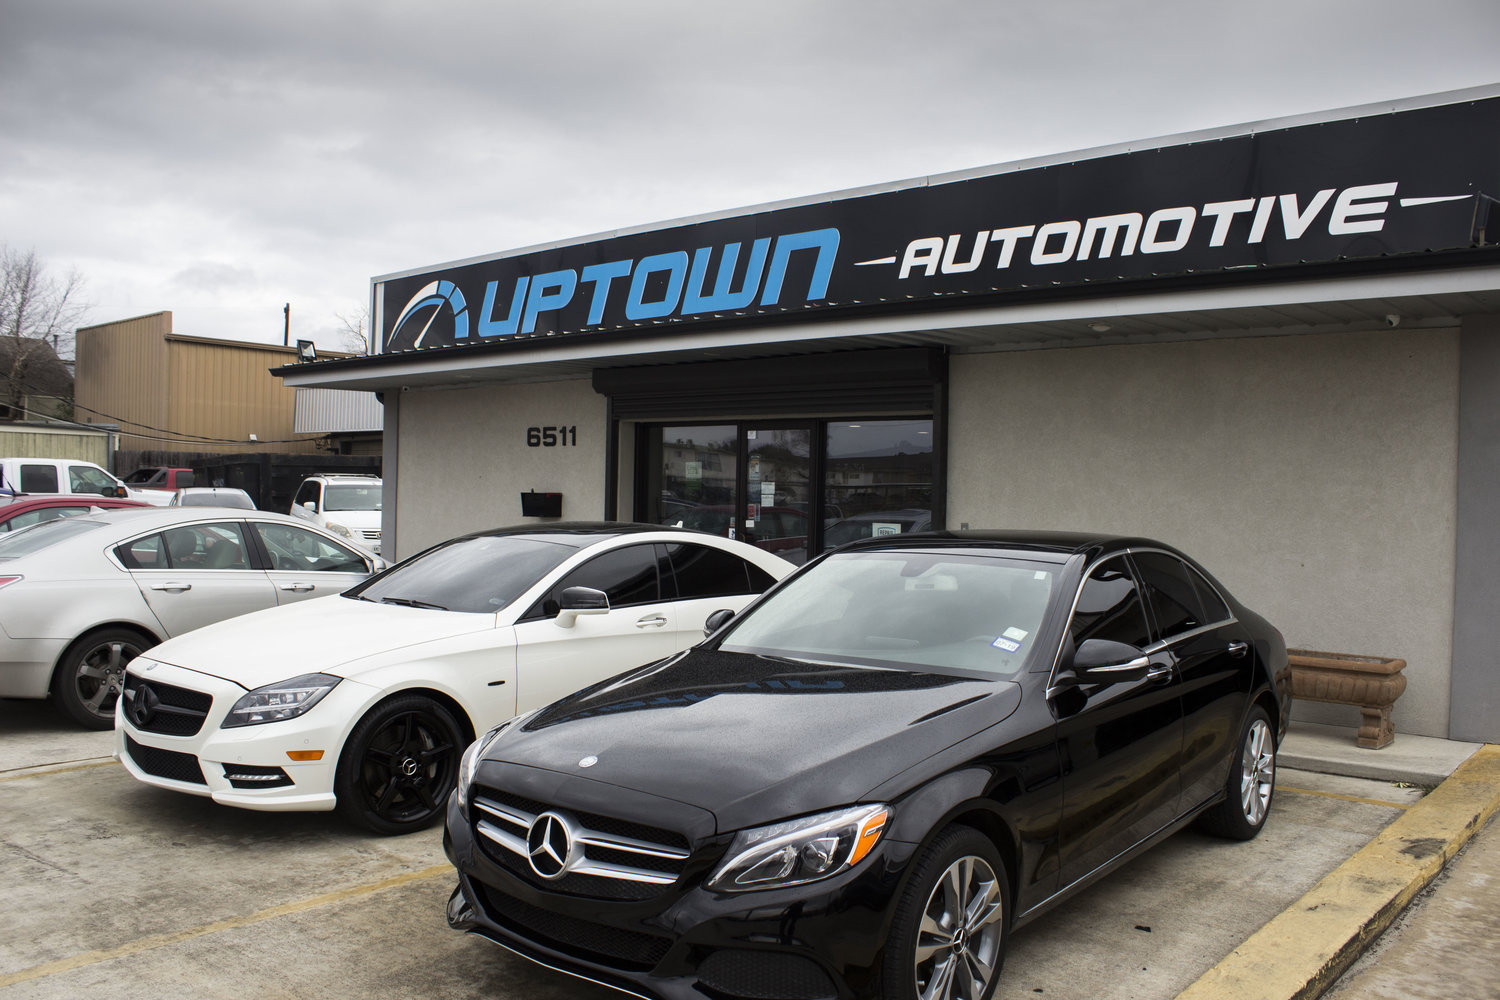 Uptown Automotive - Auto Body Shop Houston - FREE Estimates